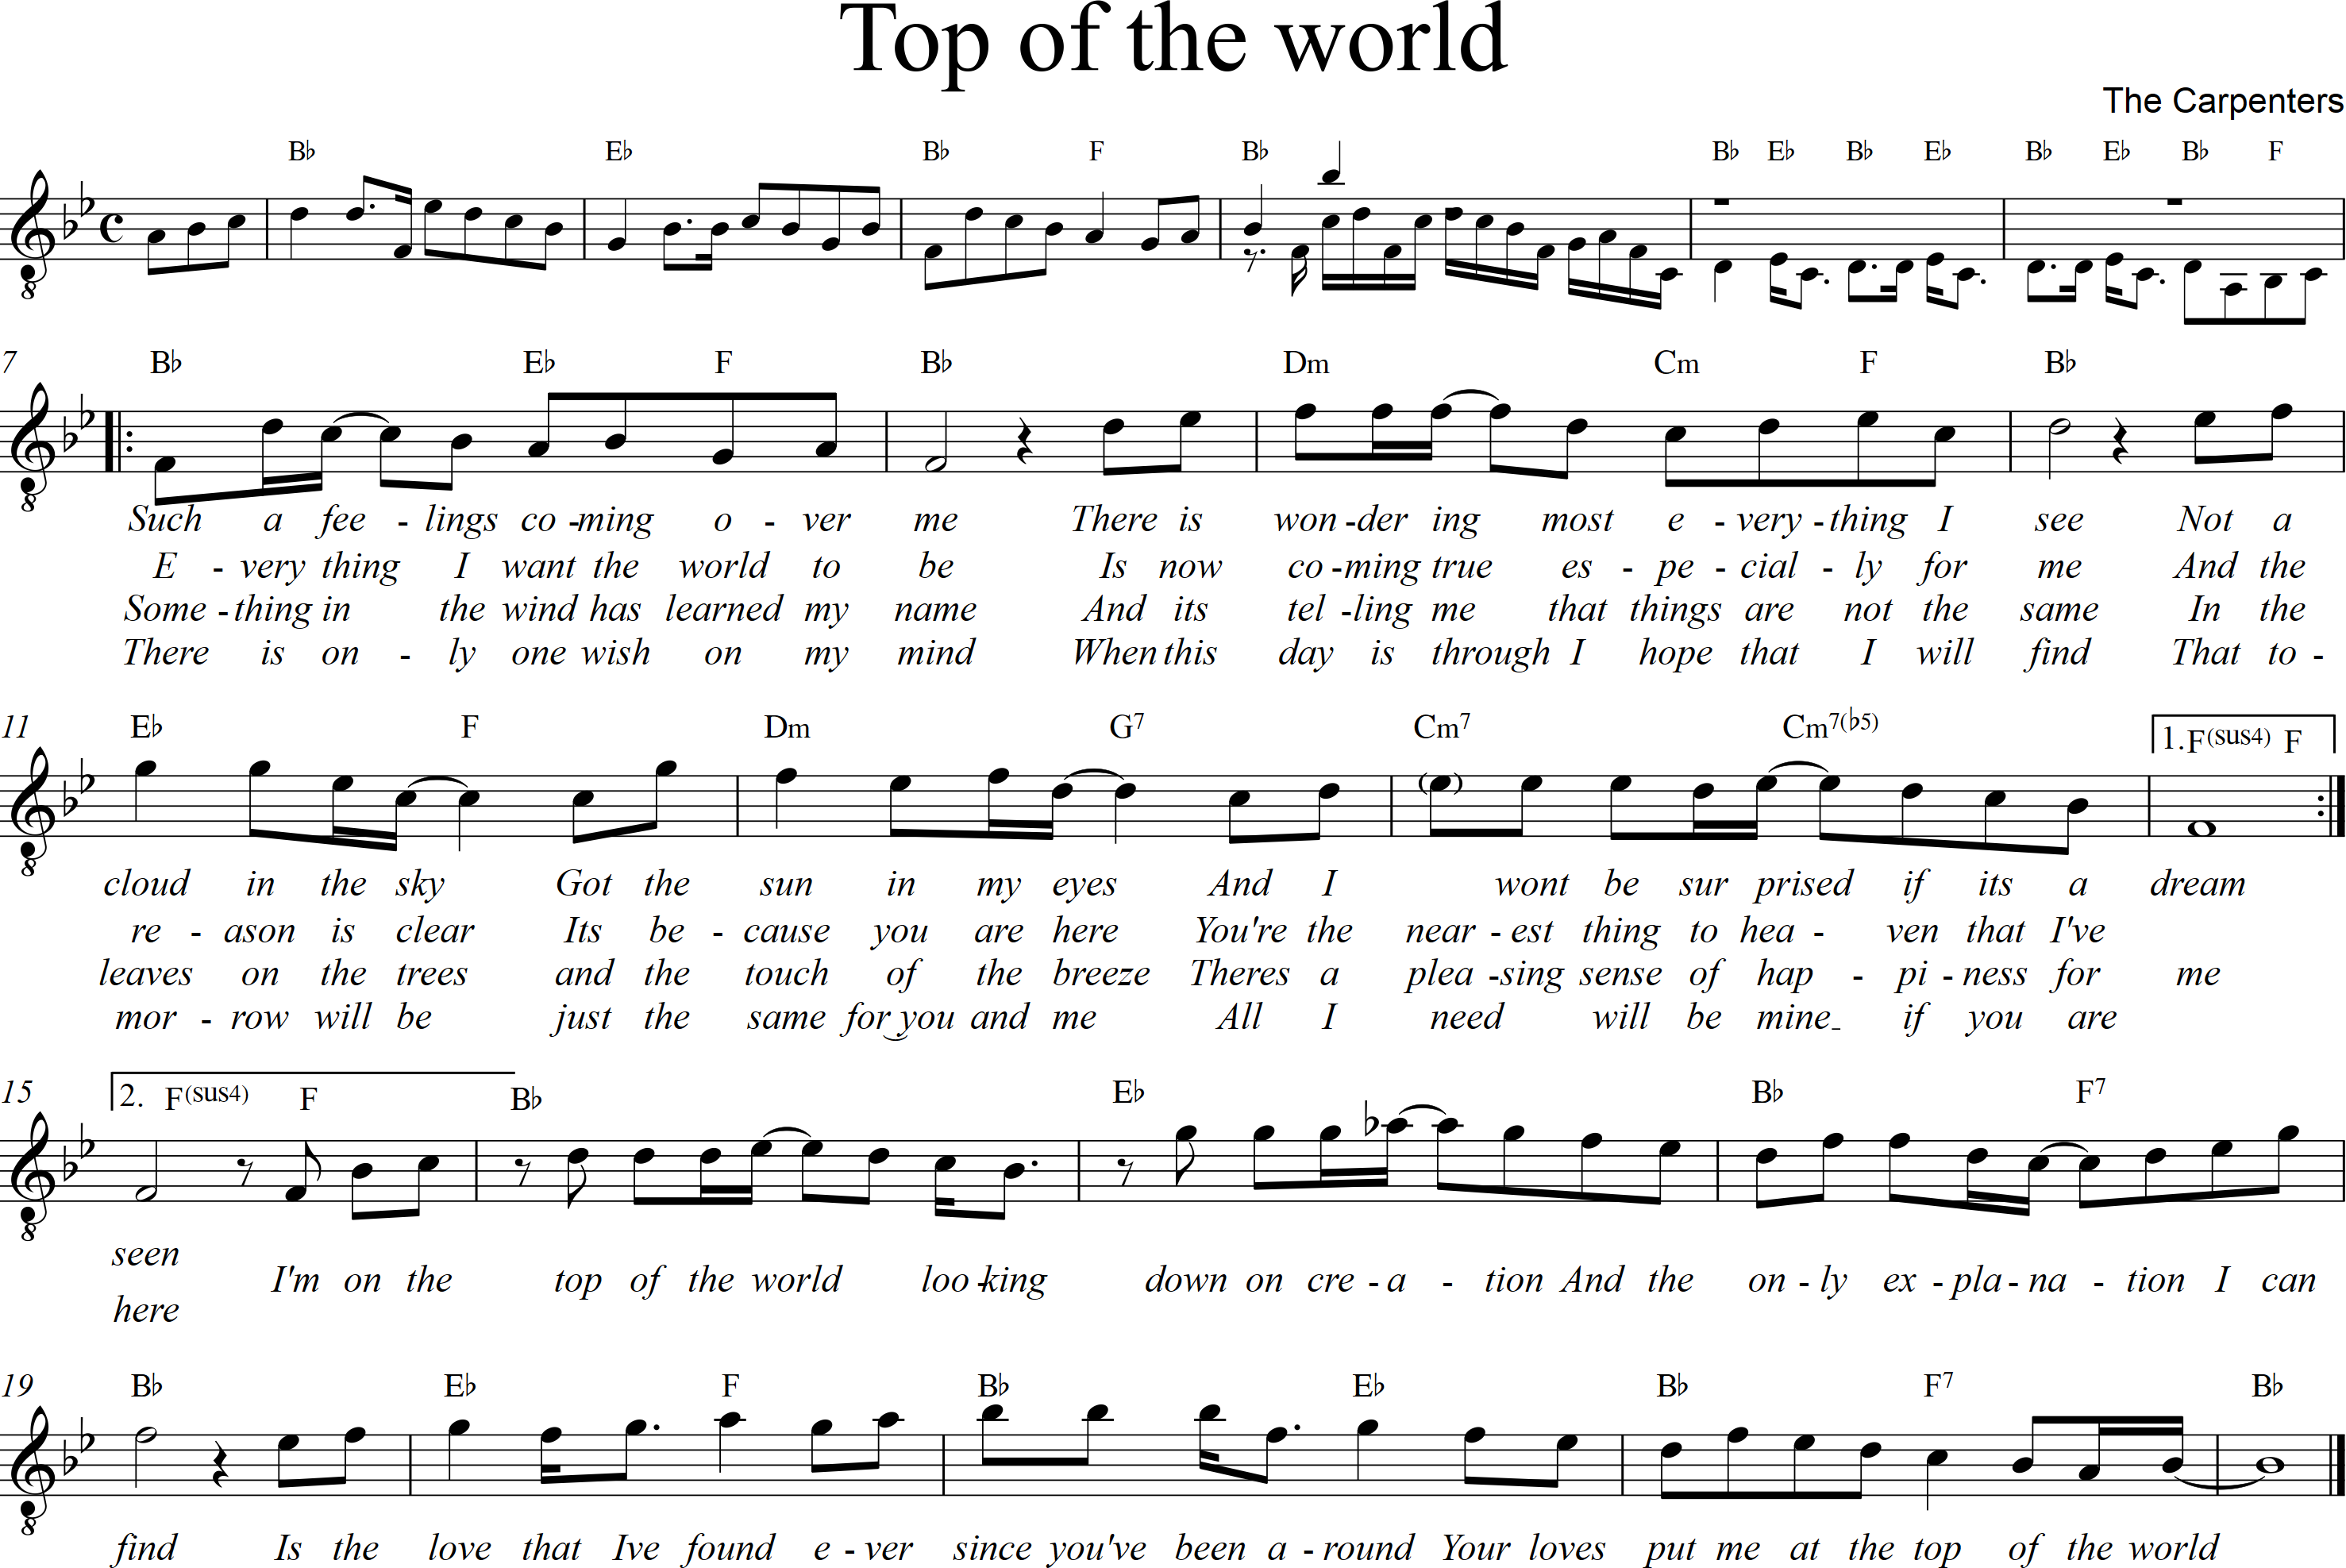 Top of the world - Bb